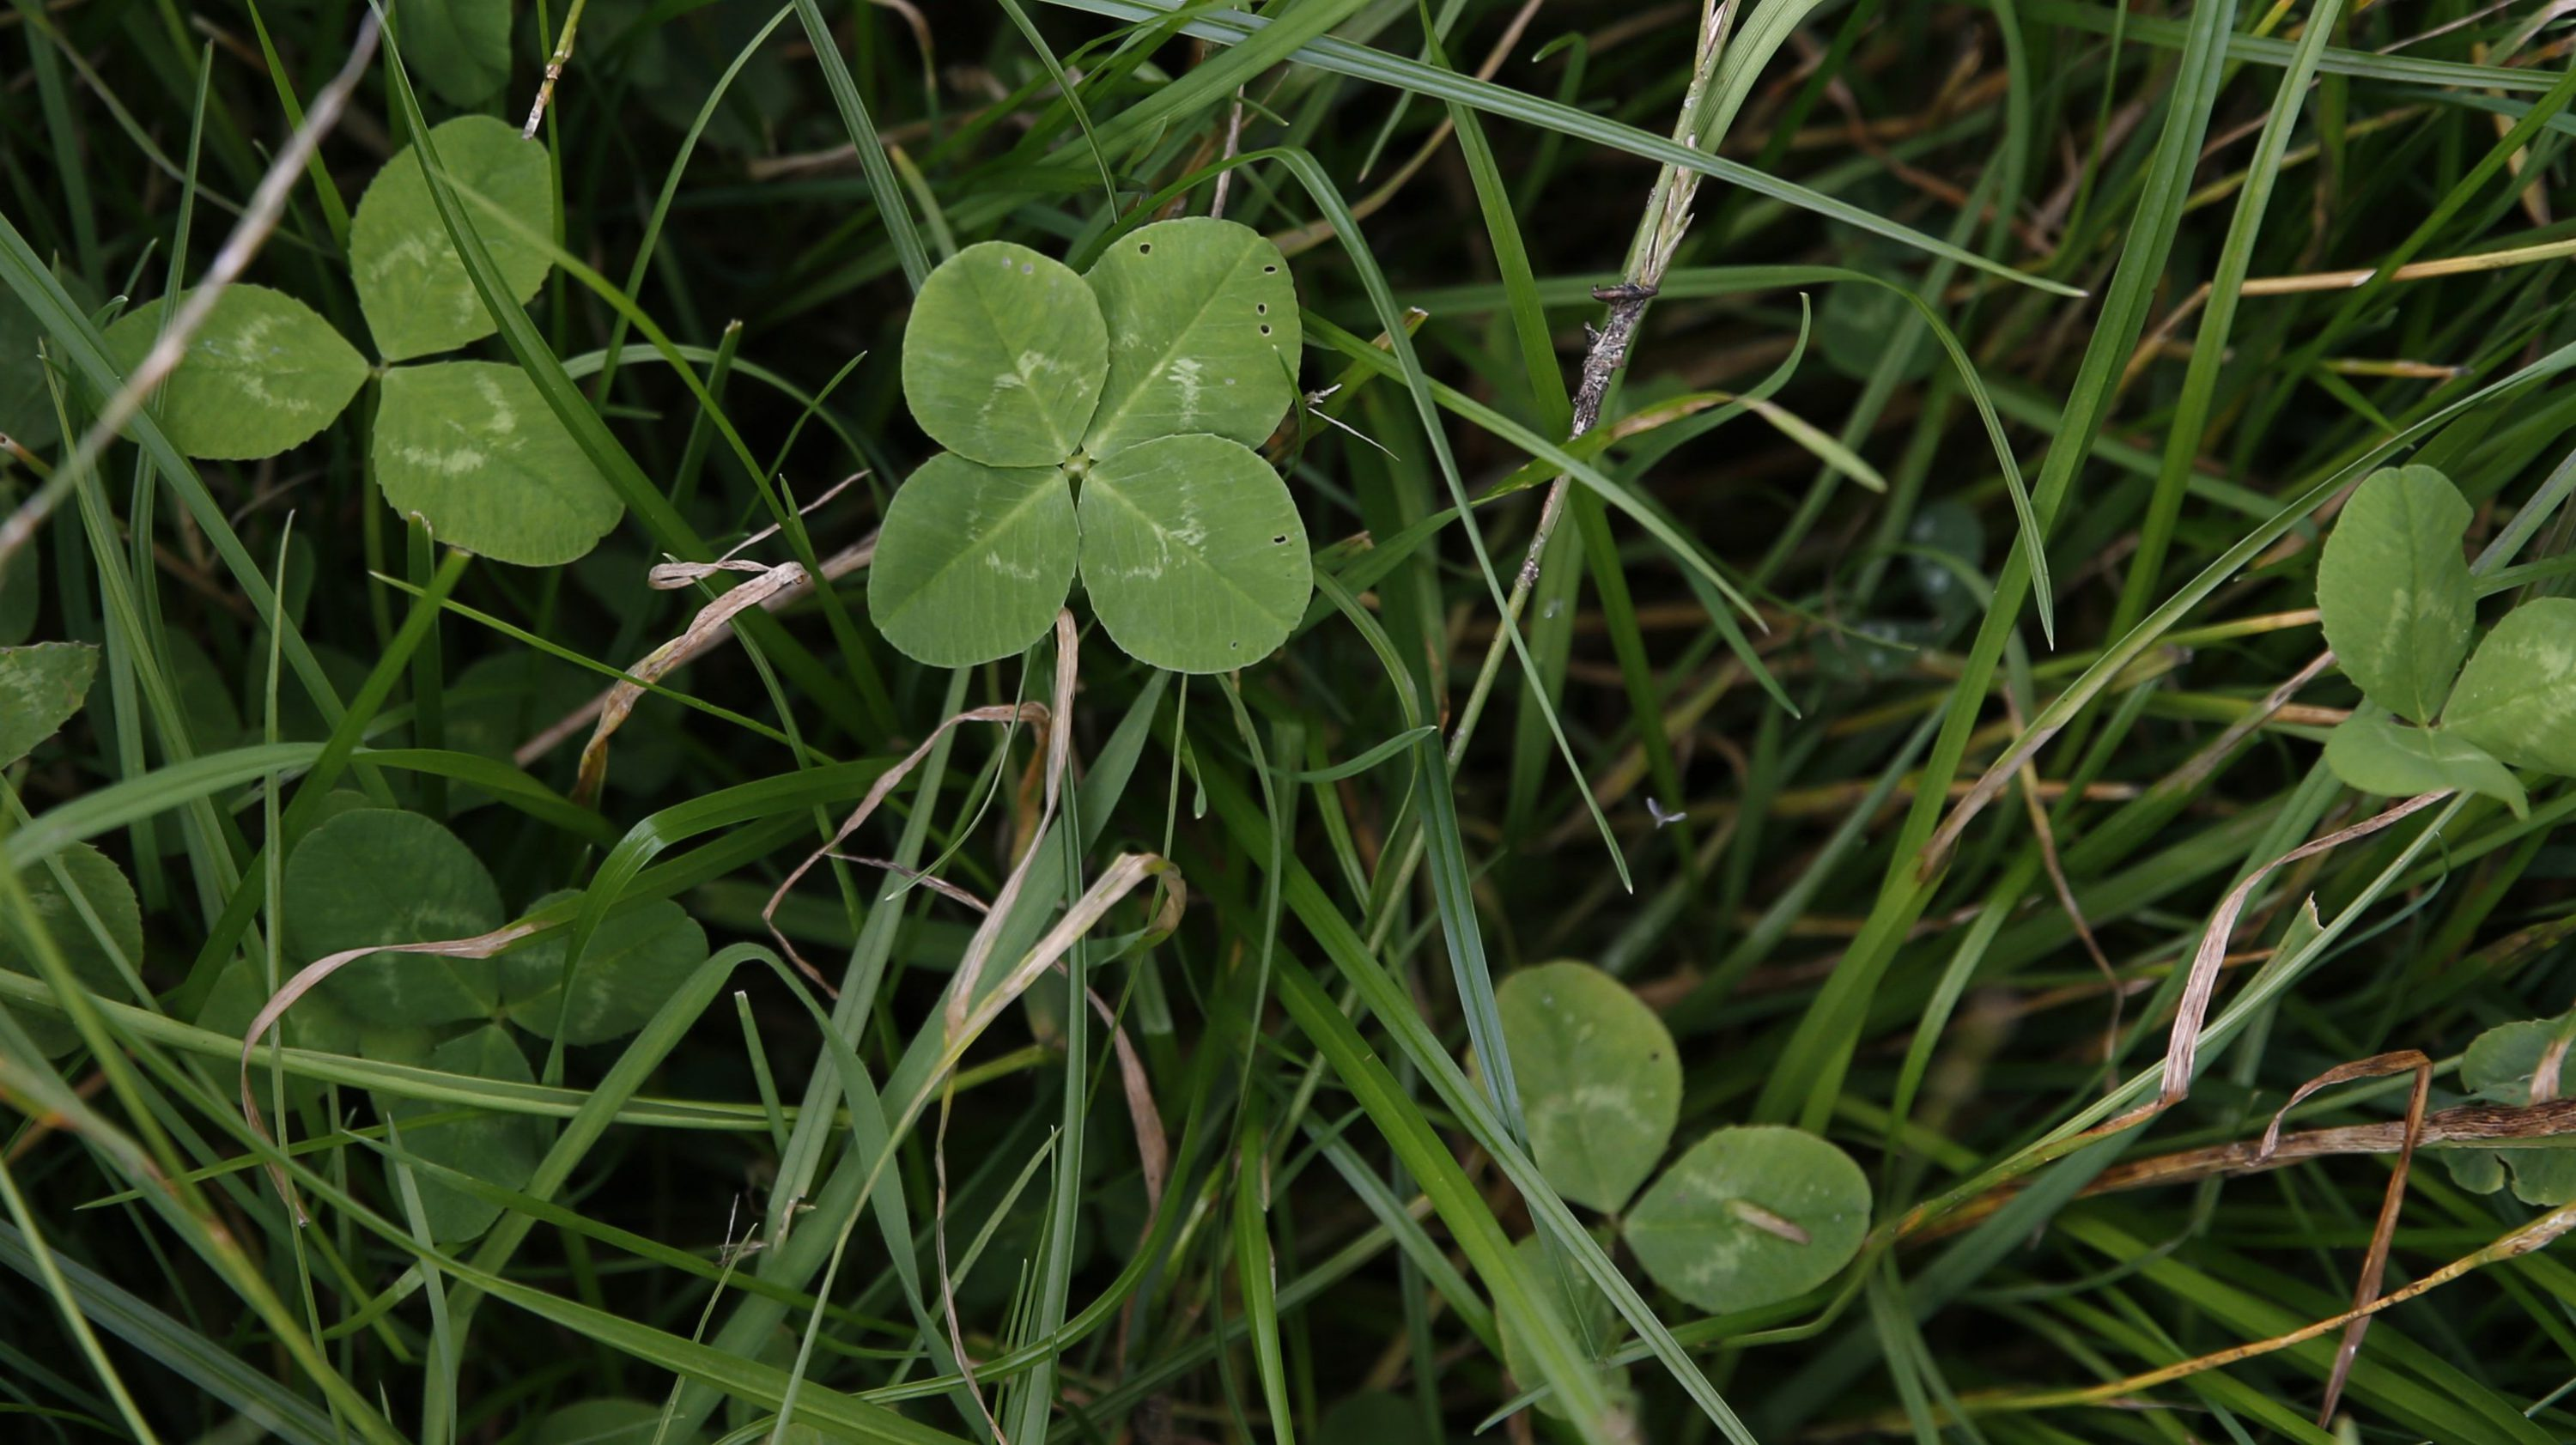 A four leafed clover is seen in Perthshire Scotland, August 11, 2015.